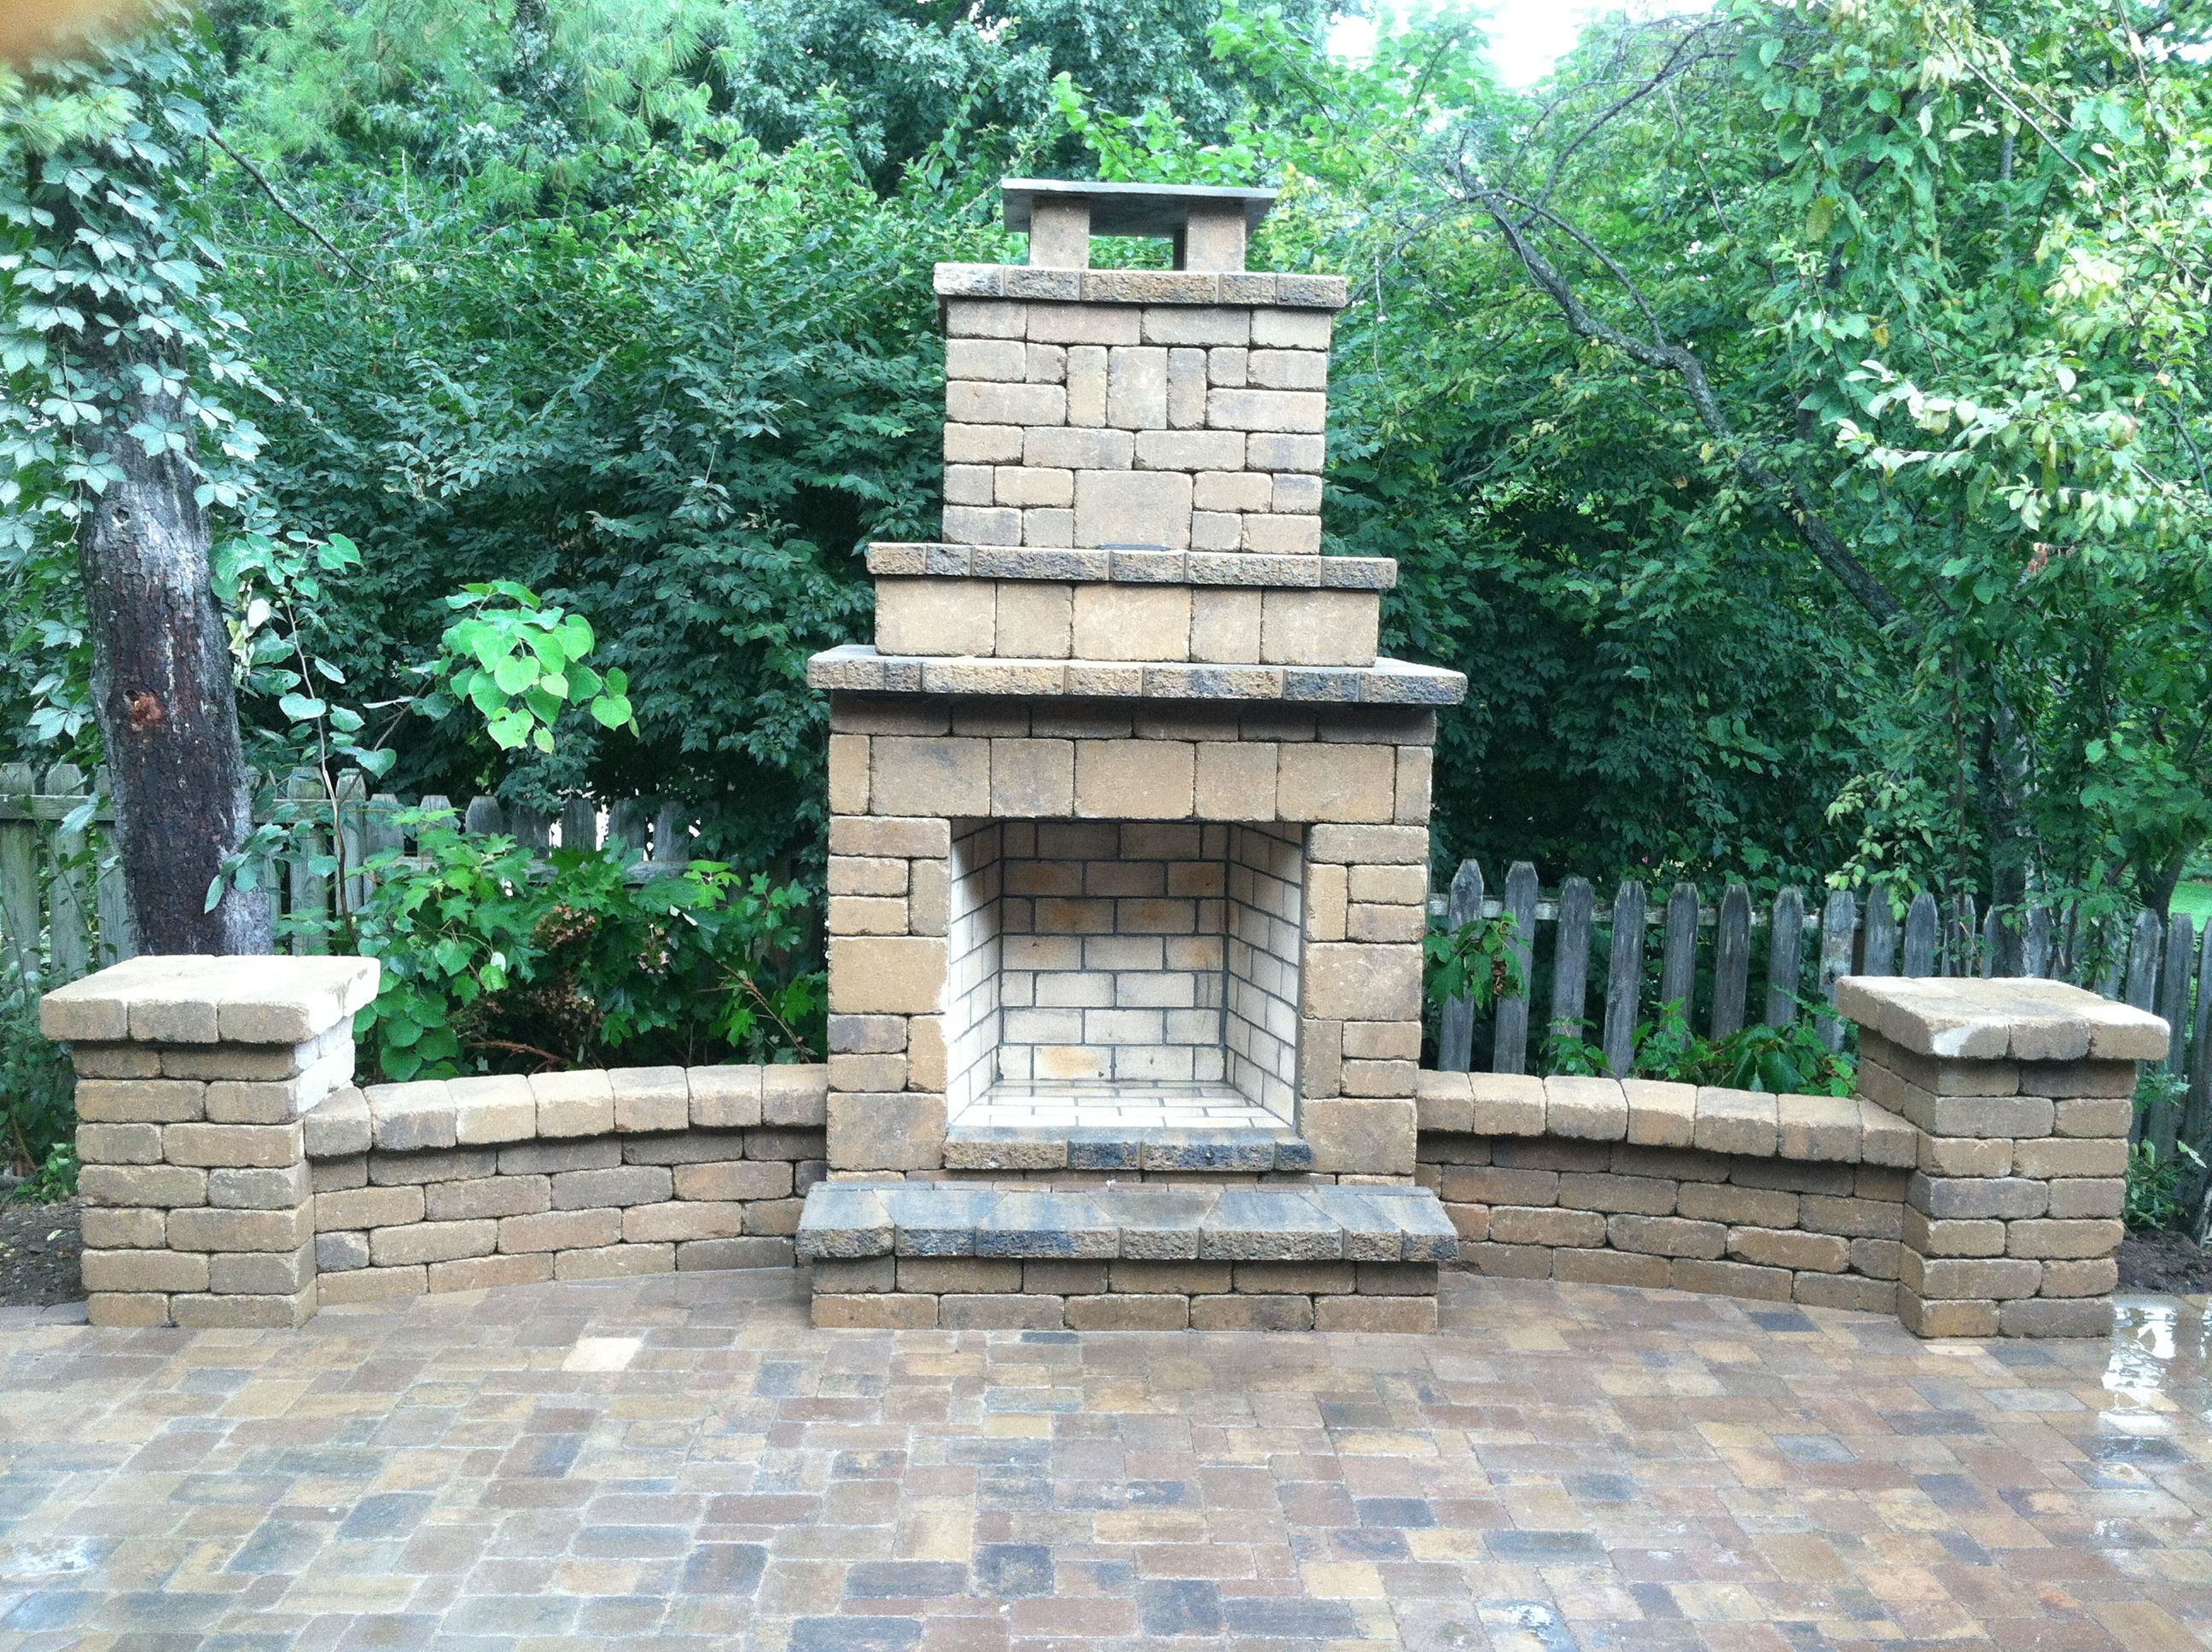 Outdoor Fireplace With Wing Walls Columns And Brick Paver Patio